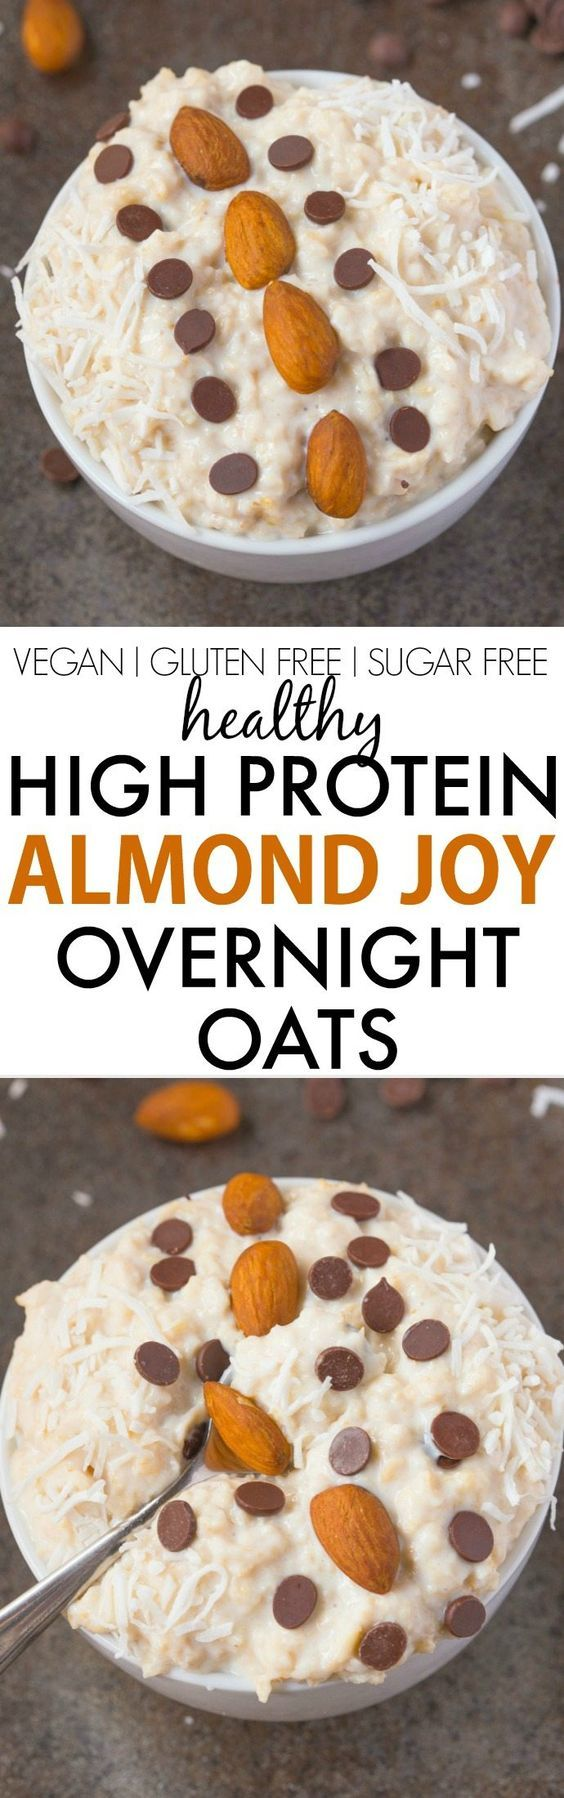 Healthy High Protein Almond Joy Overnight Oats Easy Satisfying And Tasting Like Dessert For Breakfast This Candy Bar Version Has NO Sugar Or